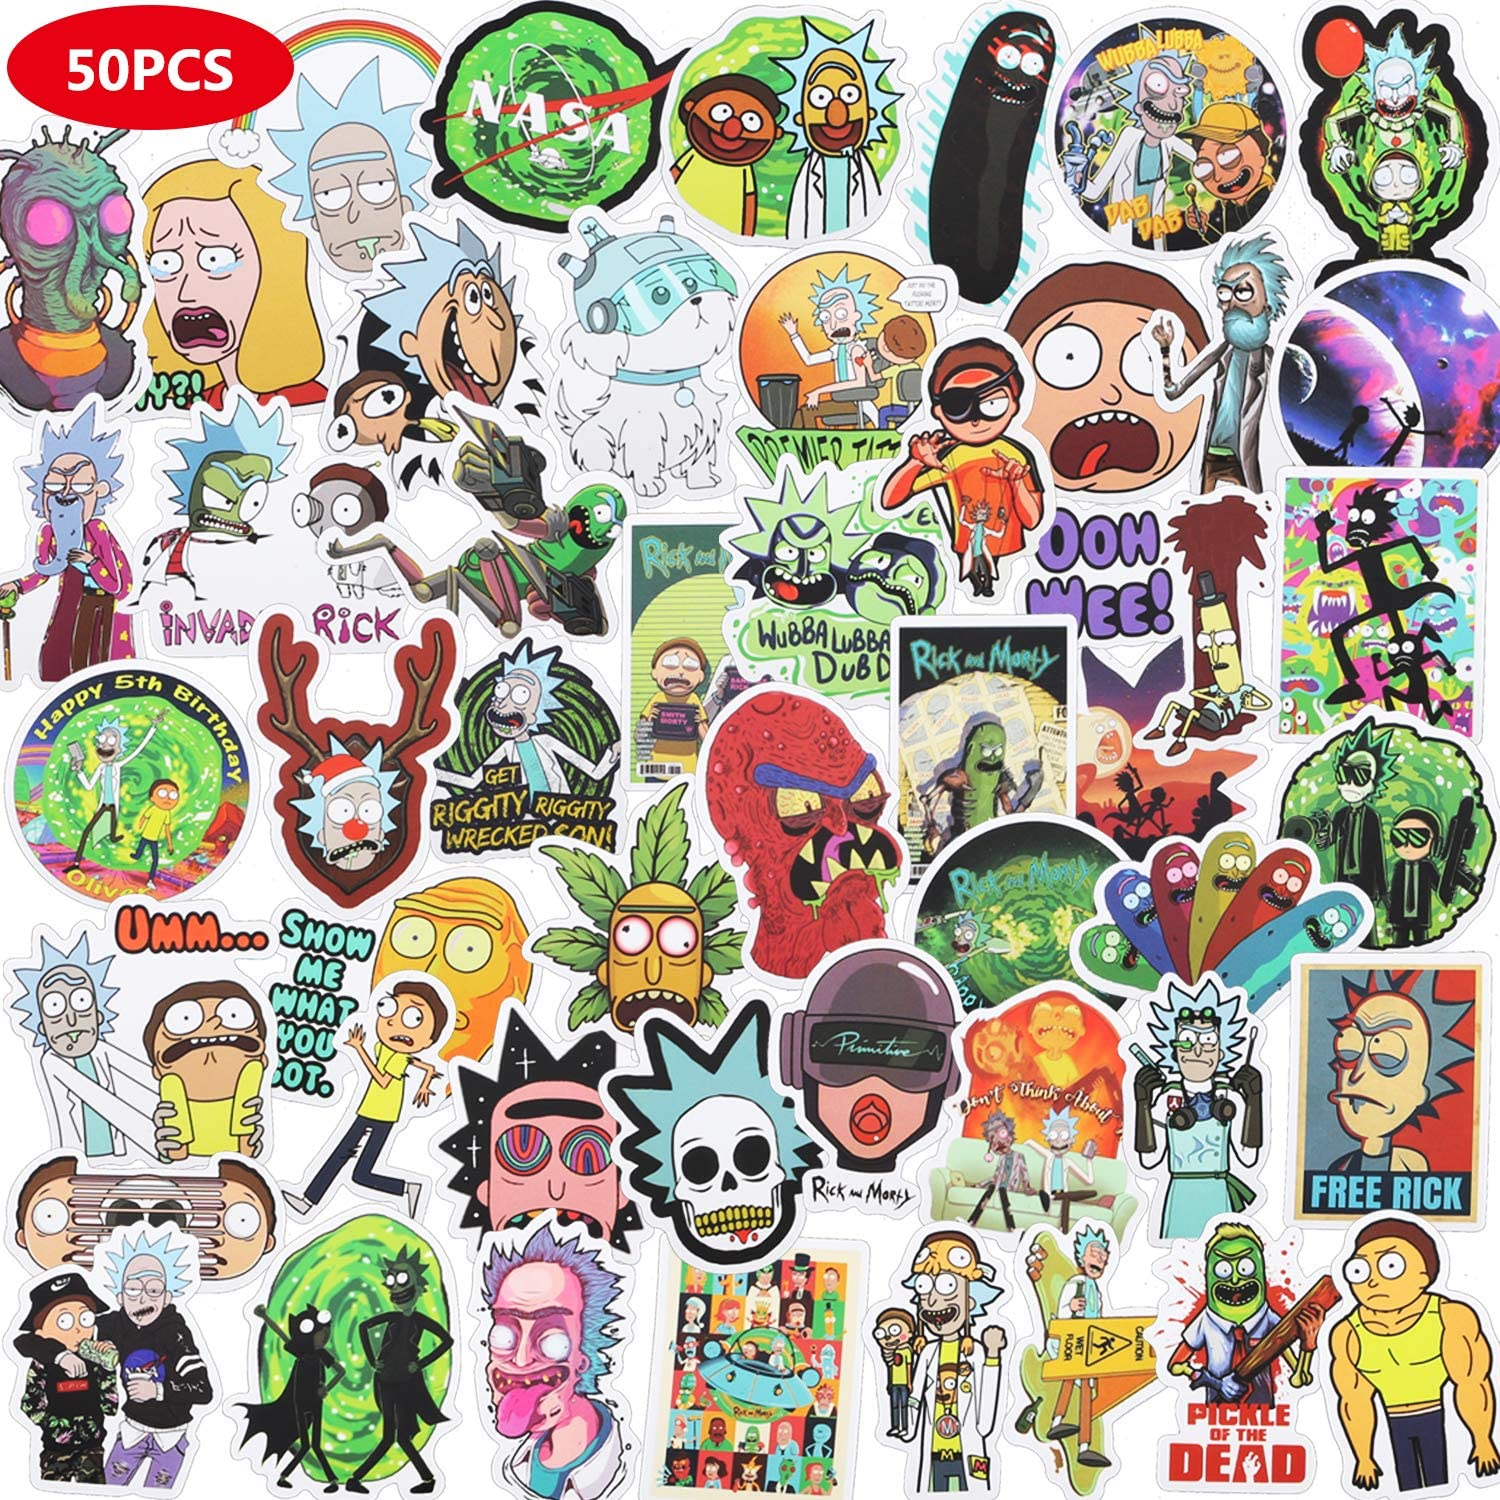 CHANSBO Rick and Morty Stickers (50 Pack), Waterproof Vinyl VSCO Stickers Cute Anime Stickers for Laptop, Skateboard, Water Bottles, Computer, Phone Case, Hydro Flask